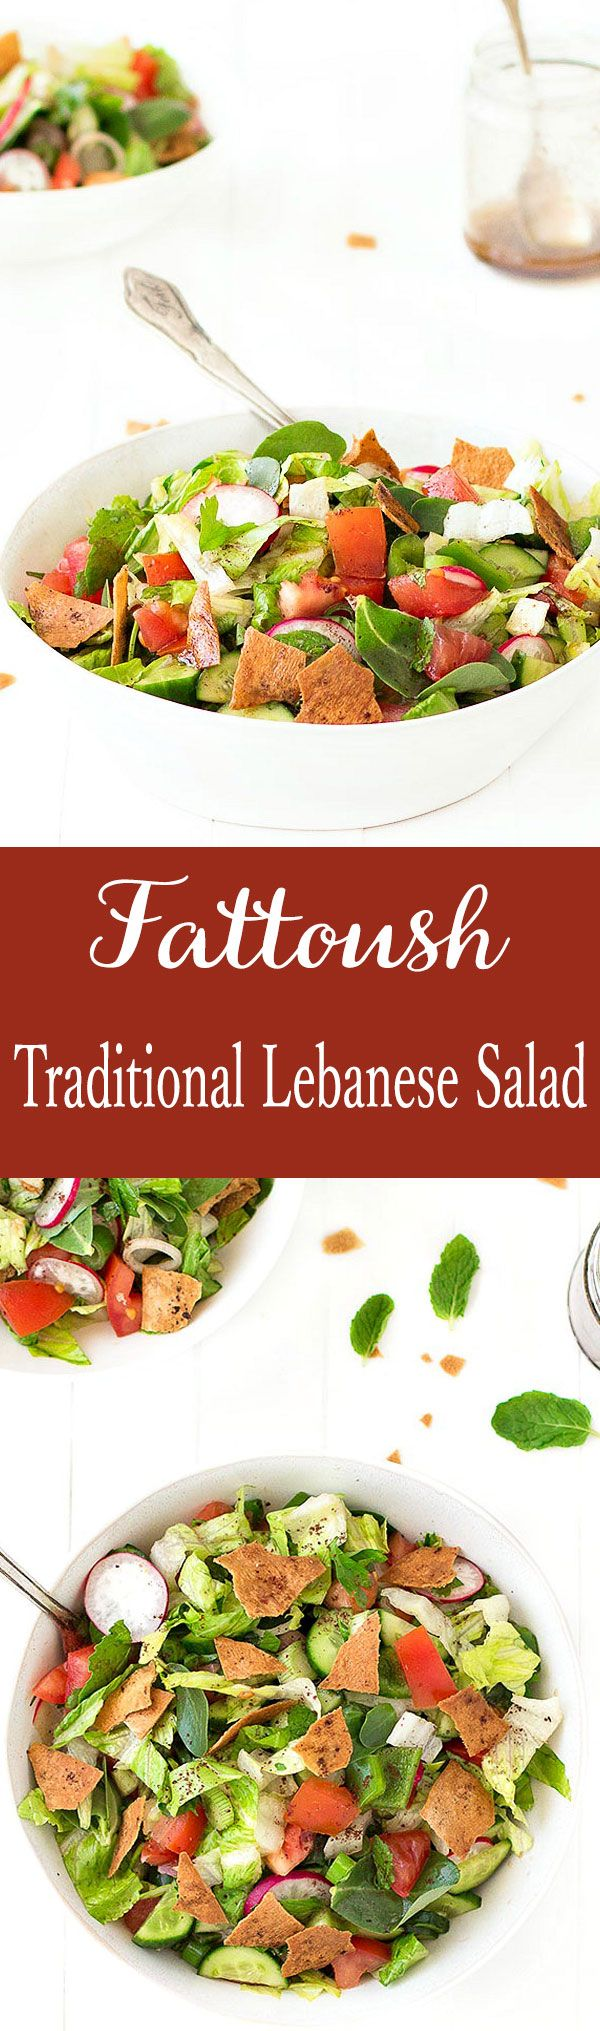 Fattoush is a traditional Lebanese salad, colorful, refreshing, crunchy and full of flavor.